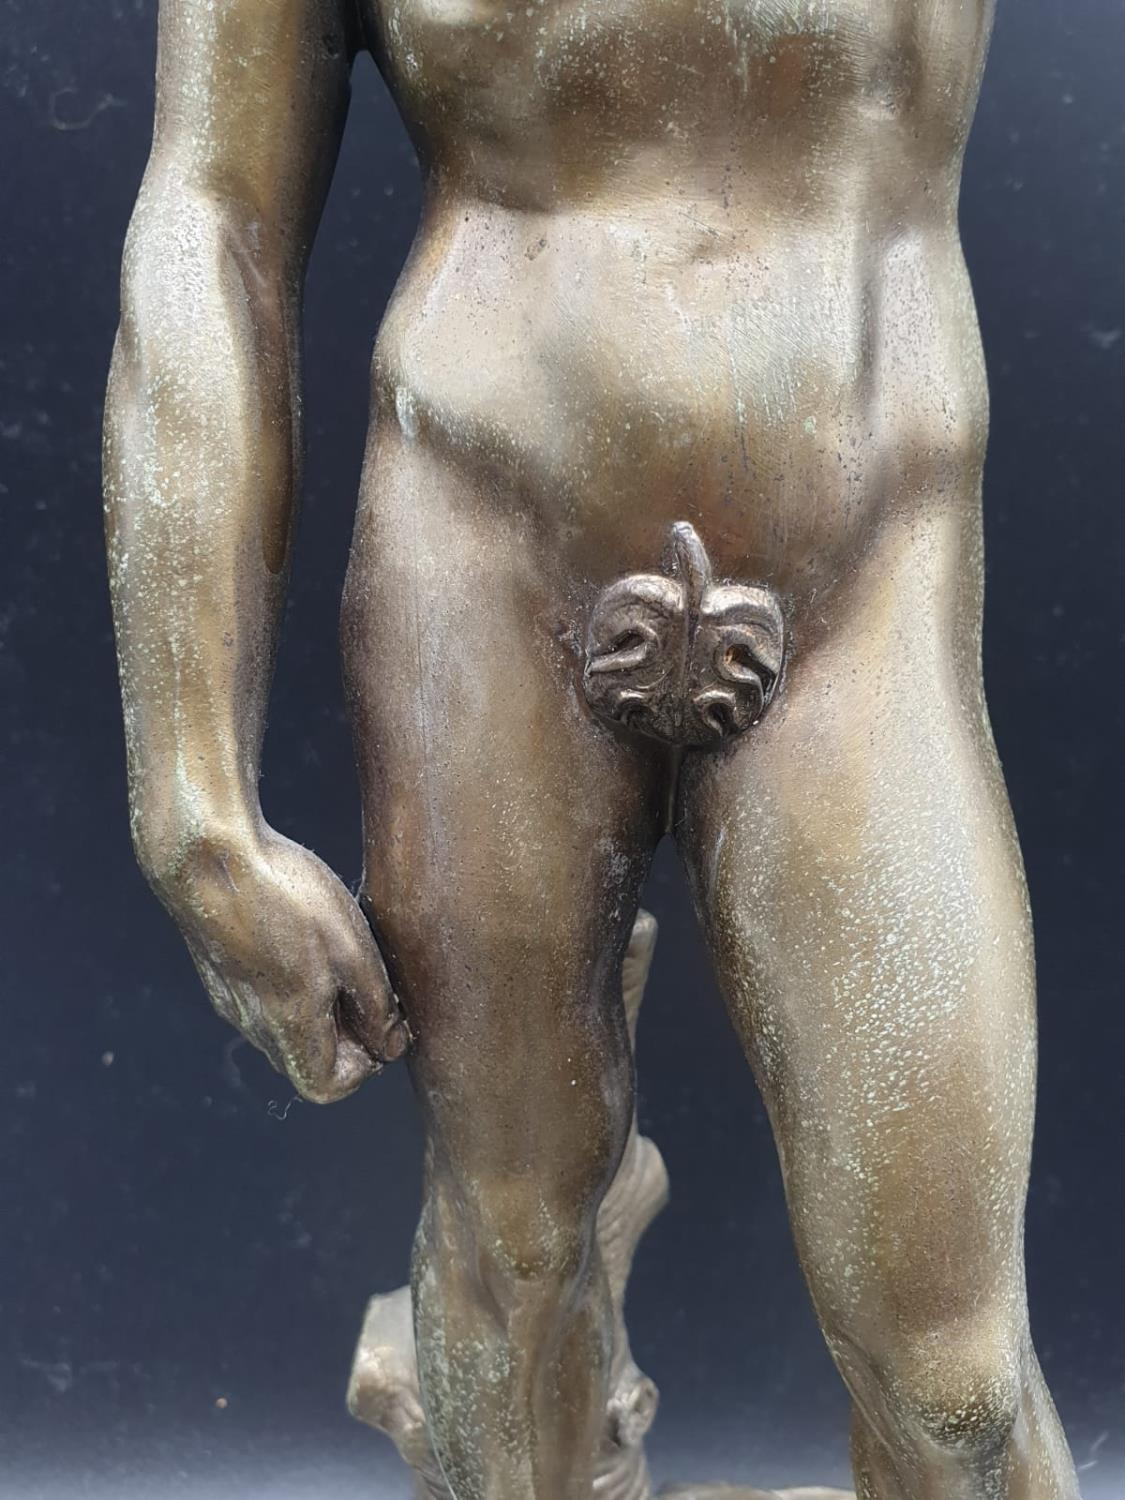 A Statue of Michelangelo's David in Brass on a Marble Base 40cms Tall 3.6kg - Image 4 of 9